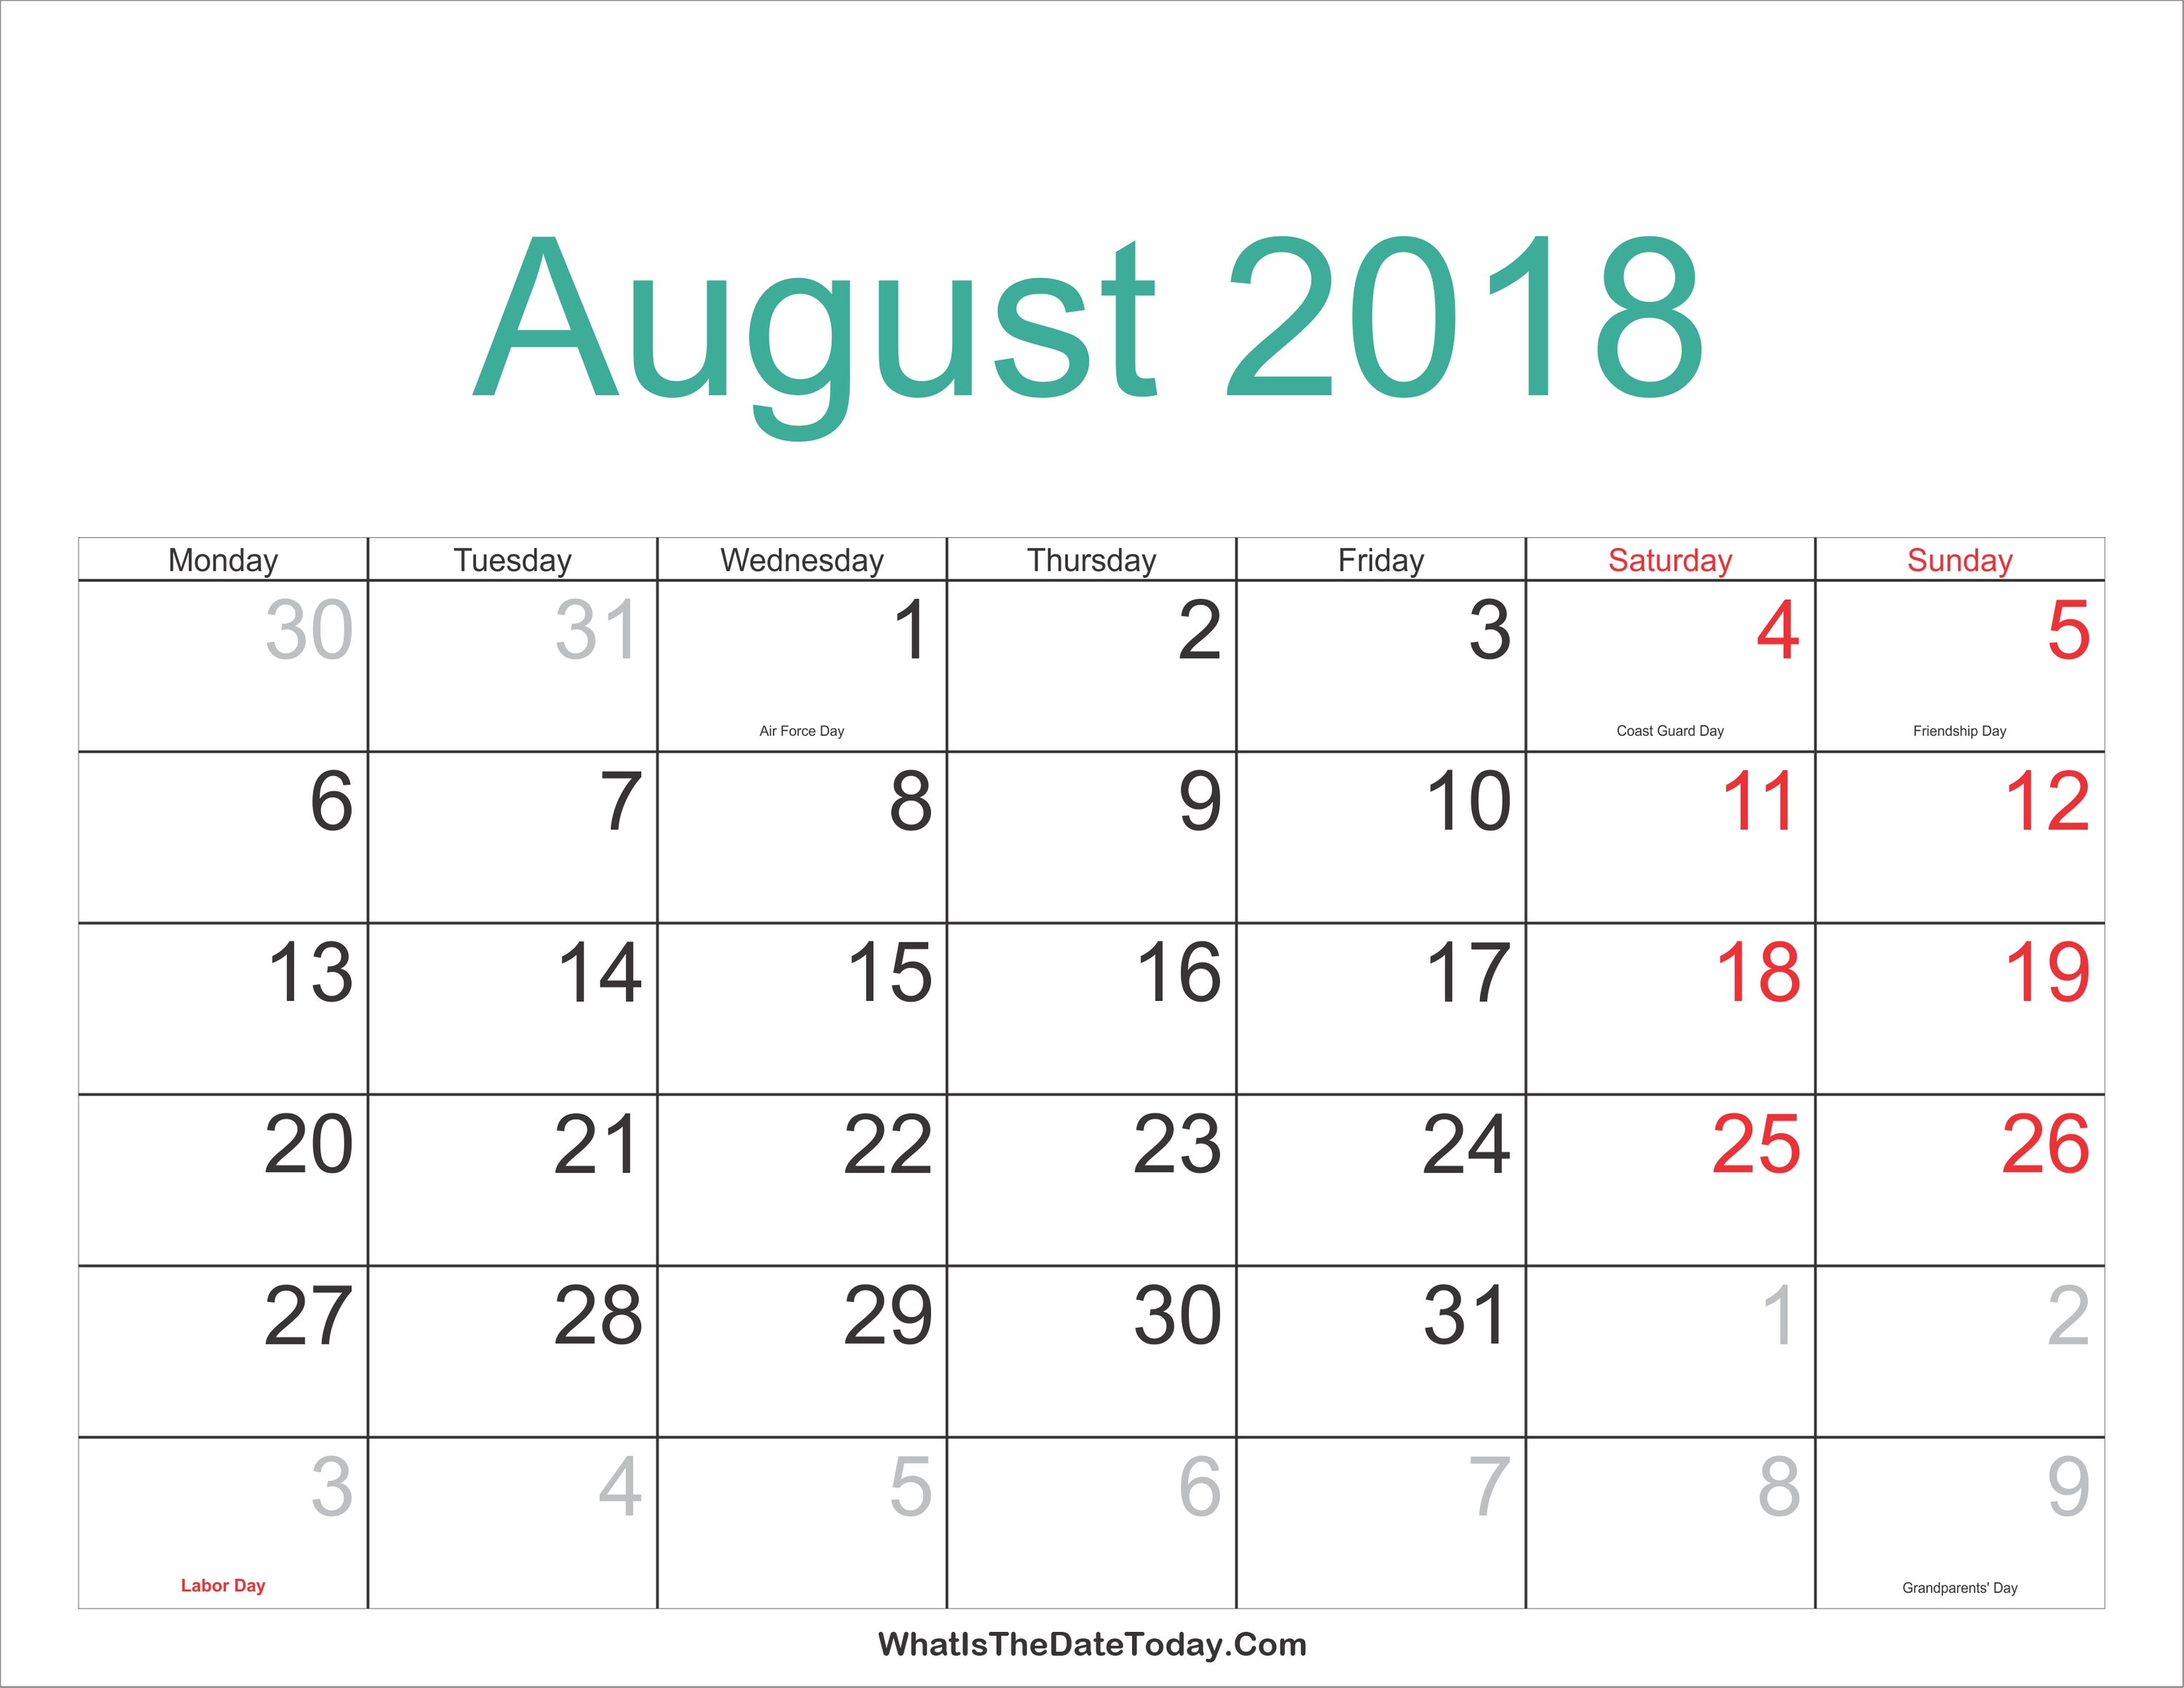 August-2018-Calendar-Philippines-Holidays-And-Events-Free-August Calendar With Holidays And Events